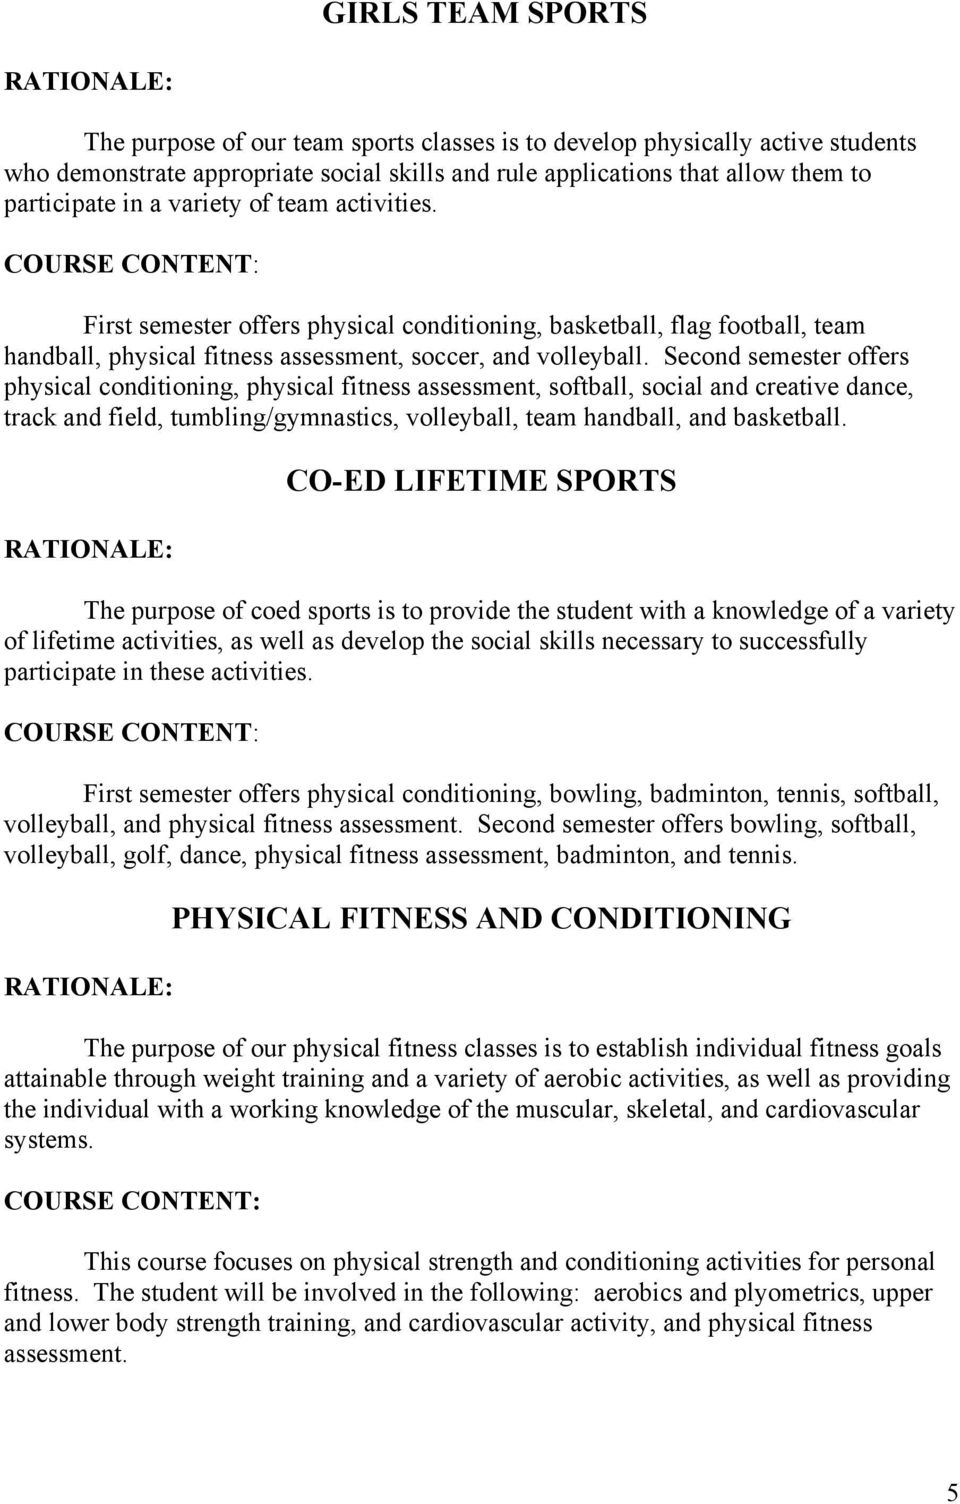 Second semester offers physical conditioning, physical fitness assessment, softball, social and creative dance, track and field, tumbling/gymnastics, volleyball, team handball, and basketball.